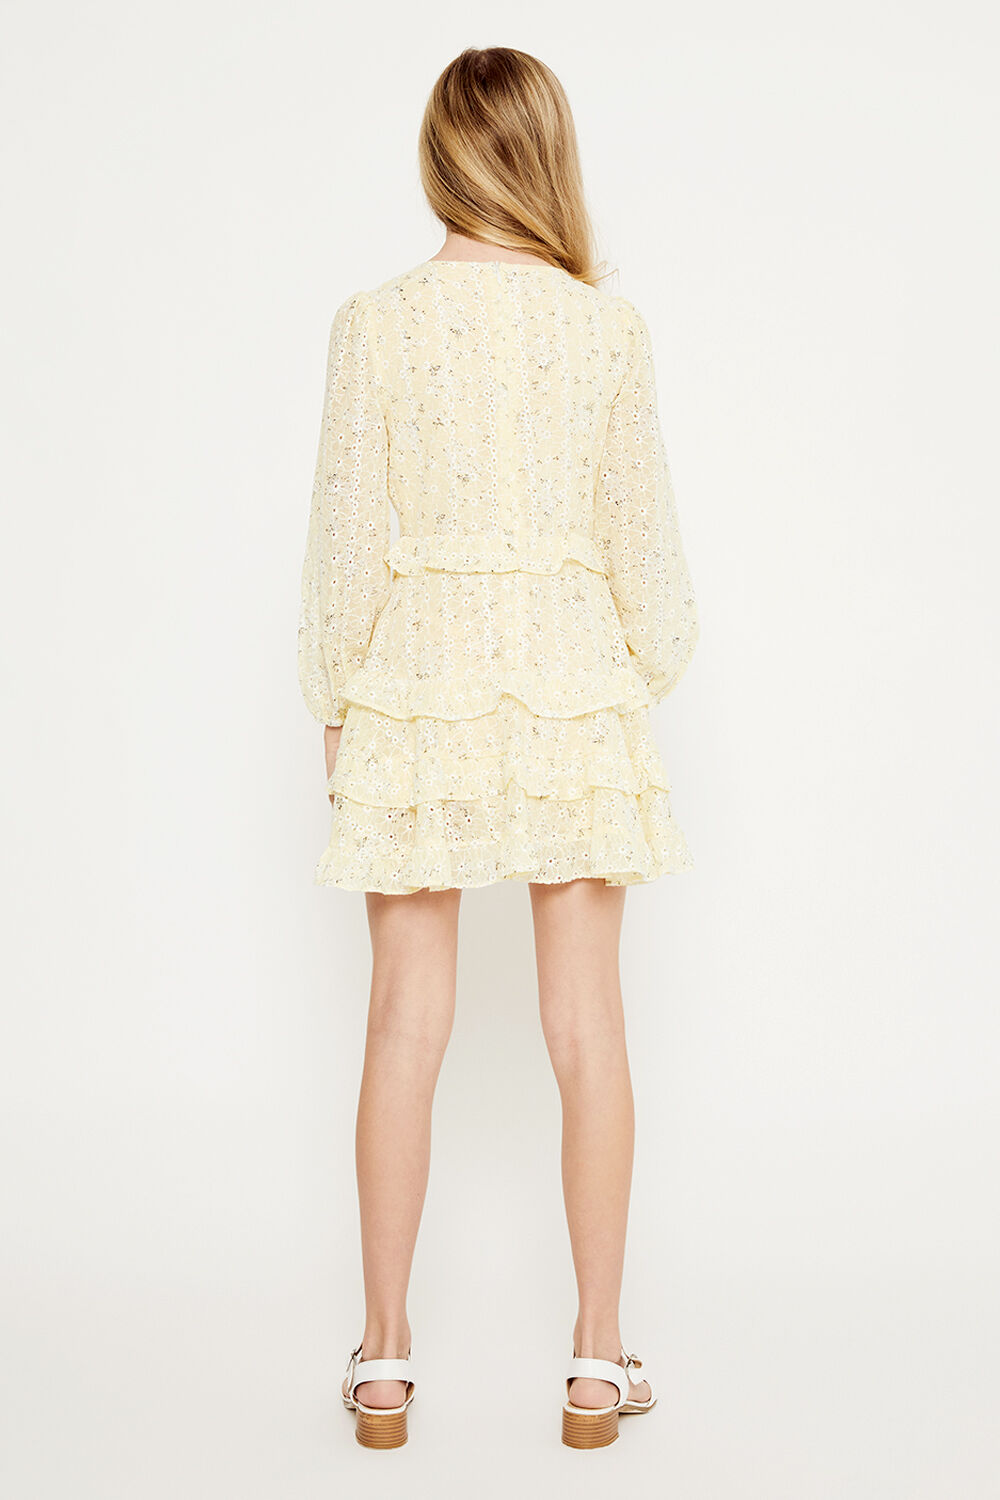 GIRLS HENRI FLORAL DRESS in colour PASTEL YELLOW